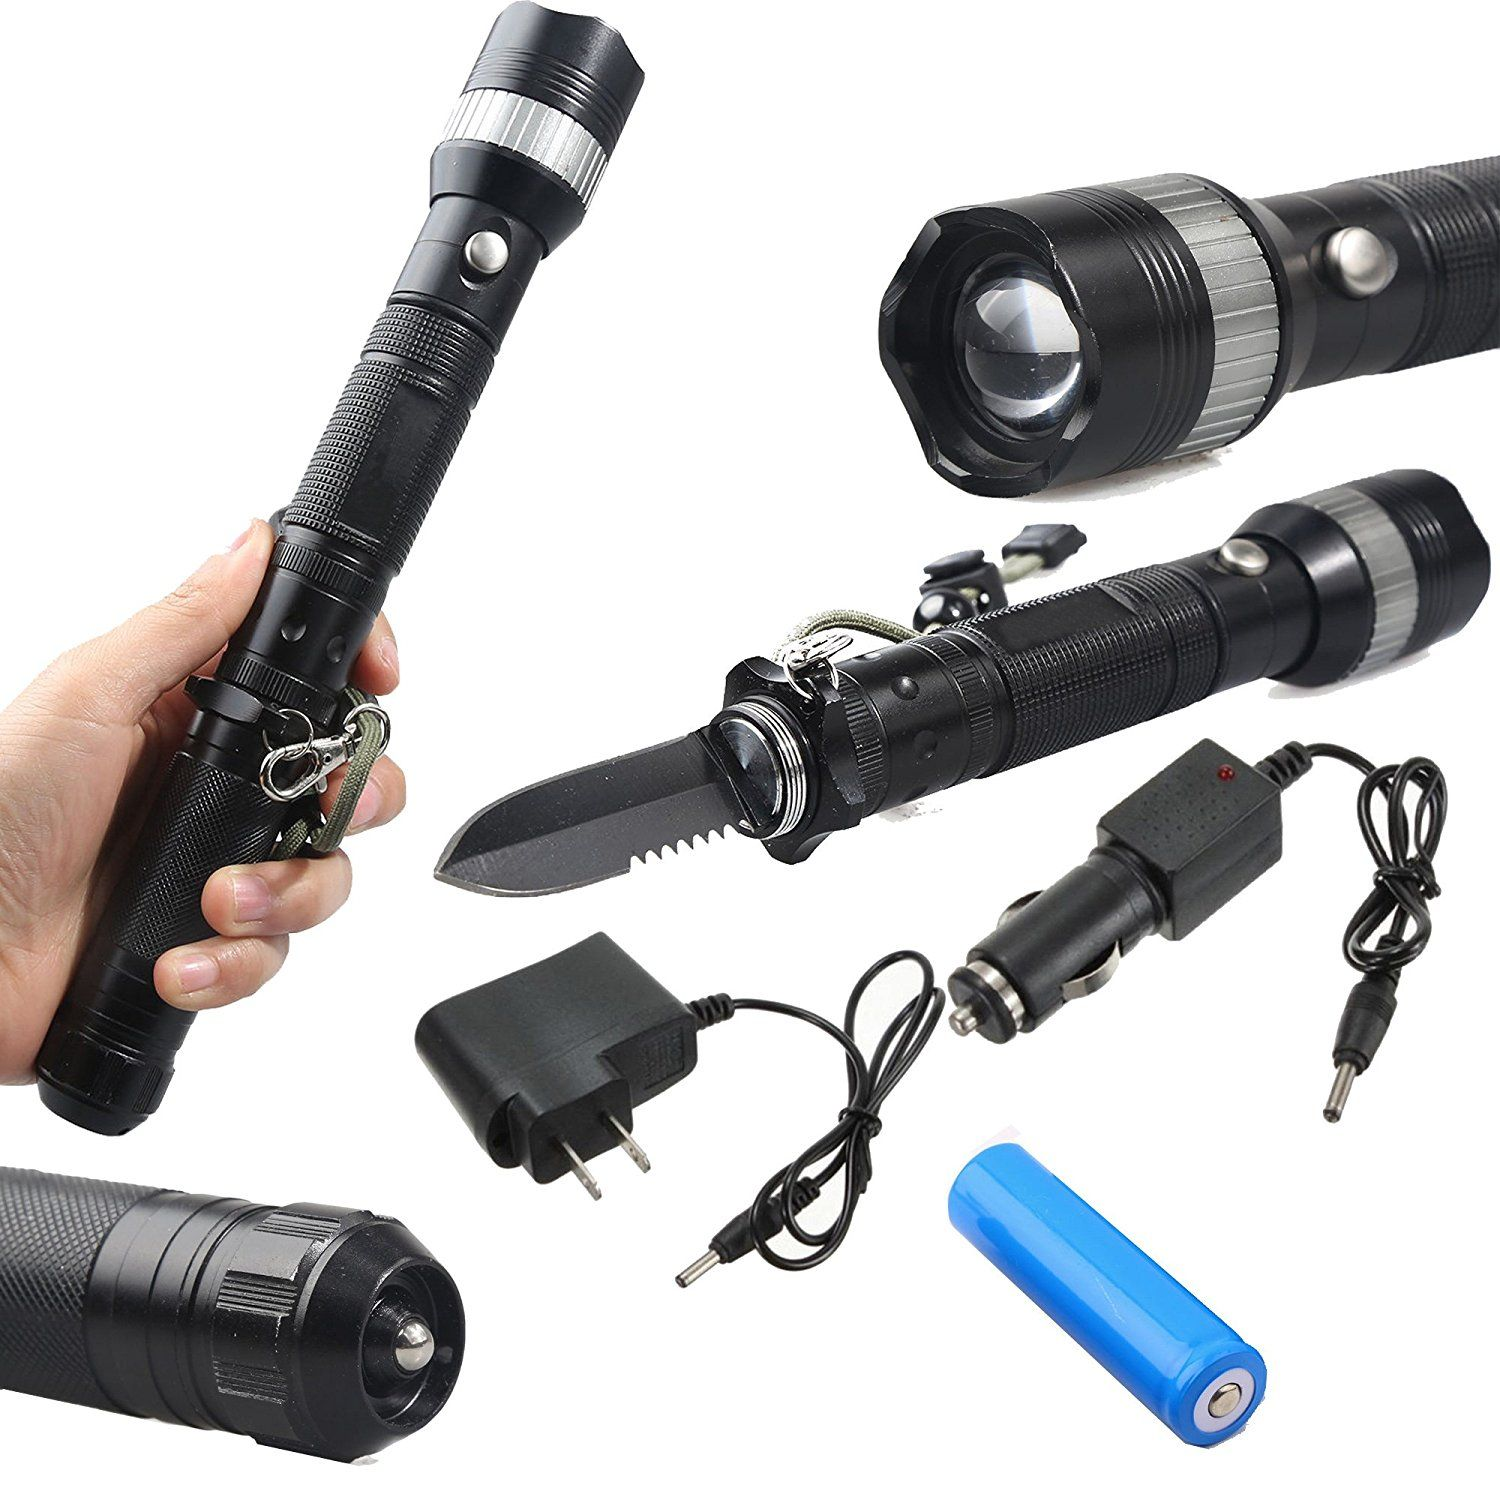 Maglite Led Conversion Upgrade Cree Xp G2 Bulb 2 D Or C Cell Flashlights By Upled Review Maglite Flashlights Cree